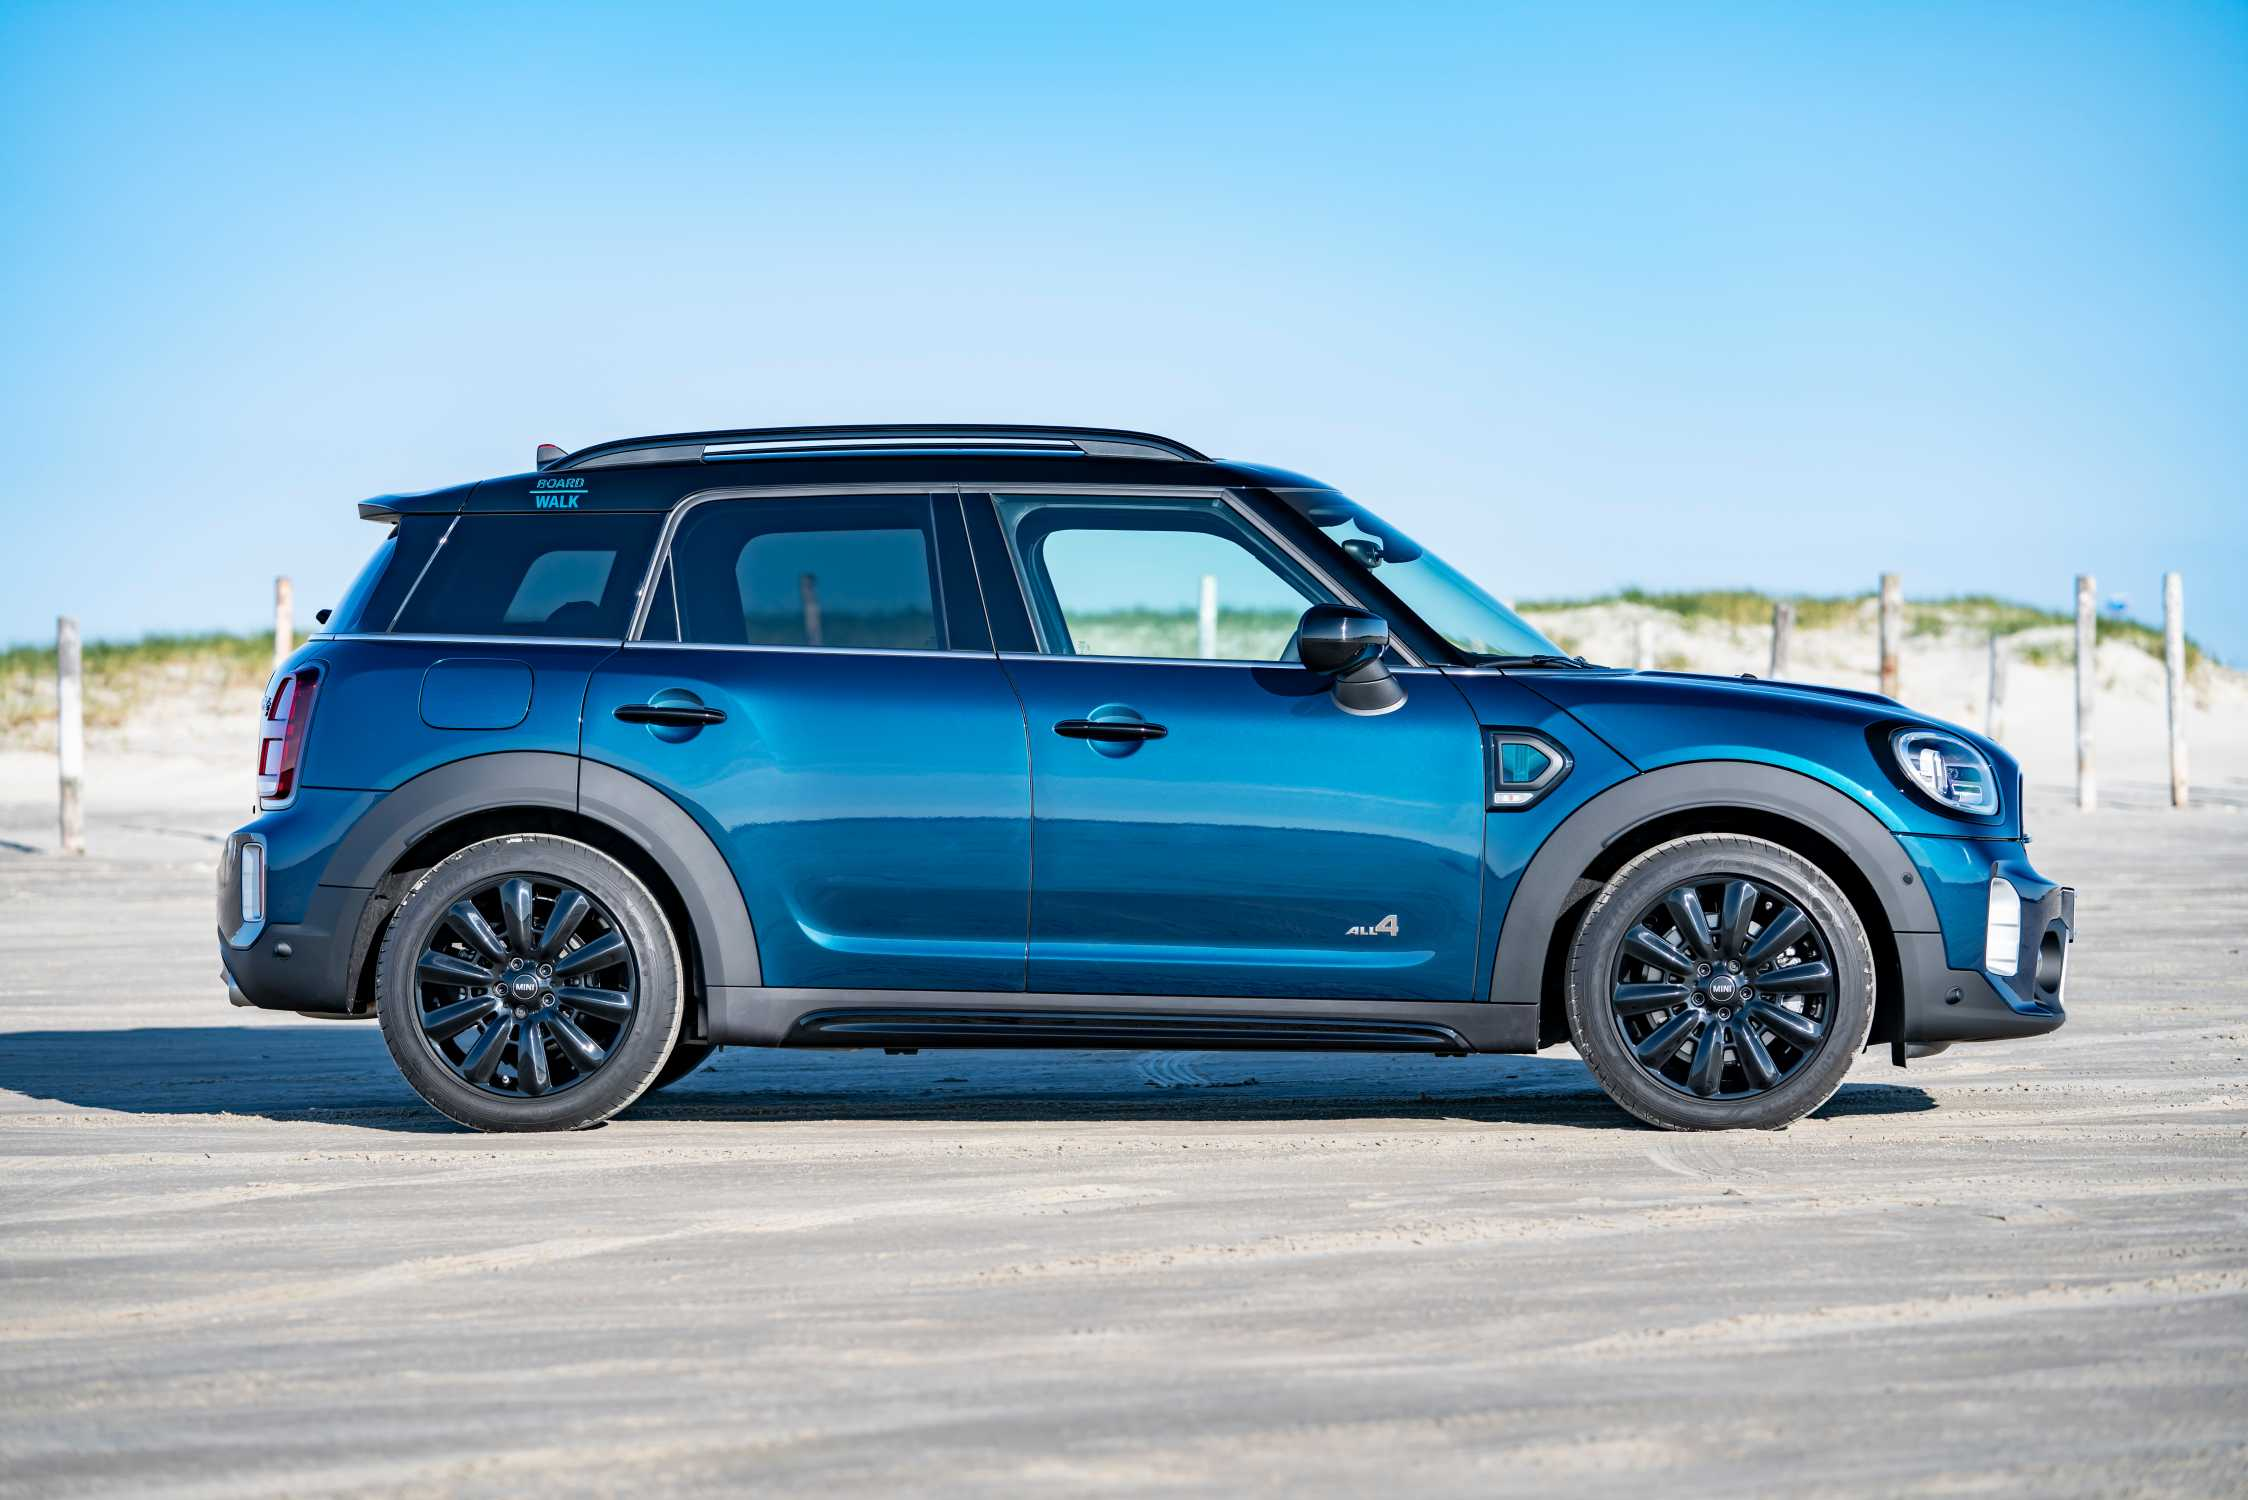 MINI Countryman Boardwalk Edition (12/2020)